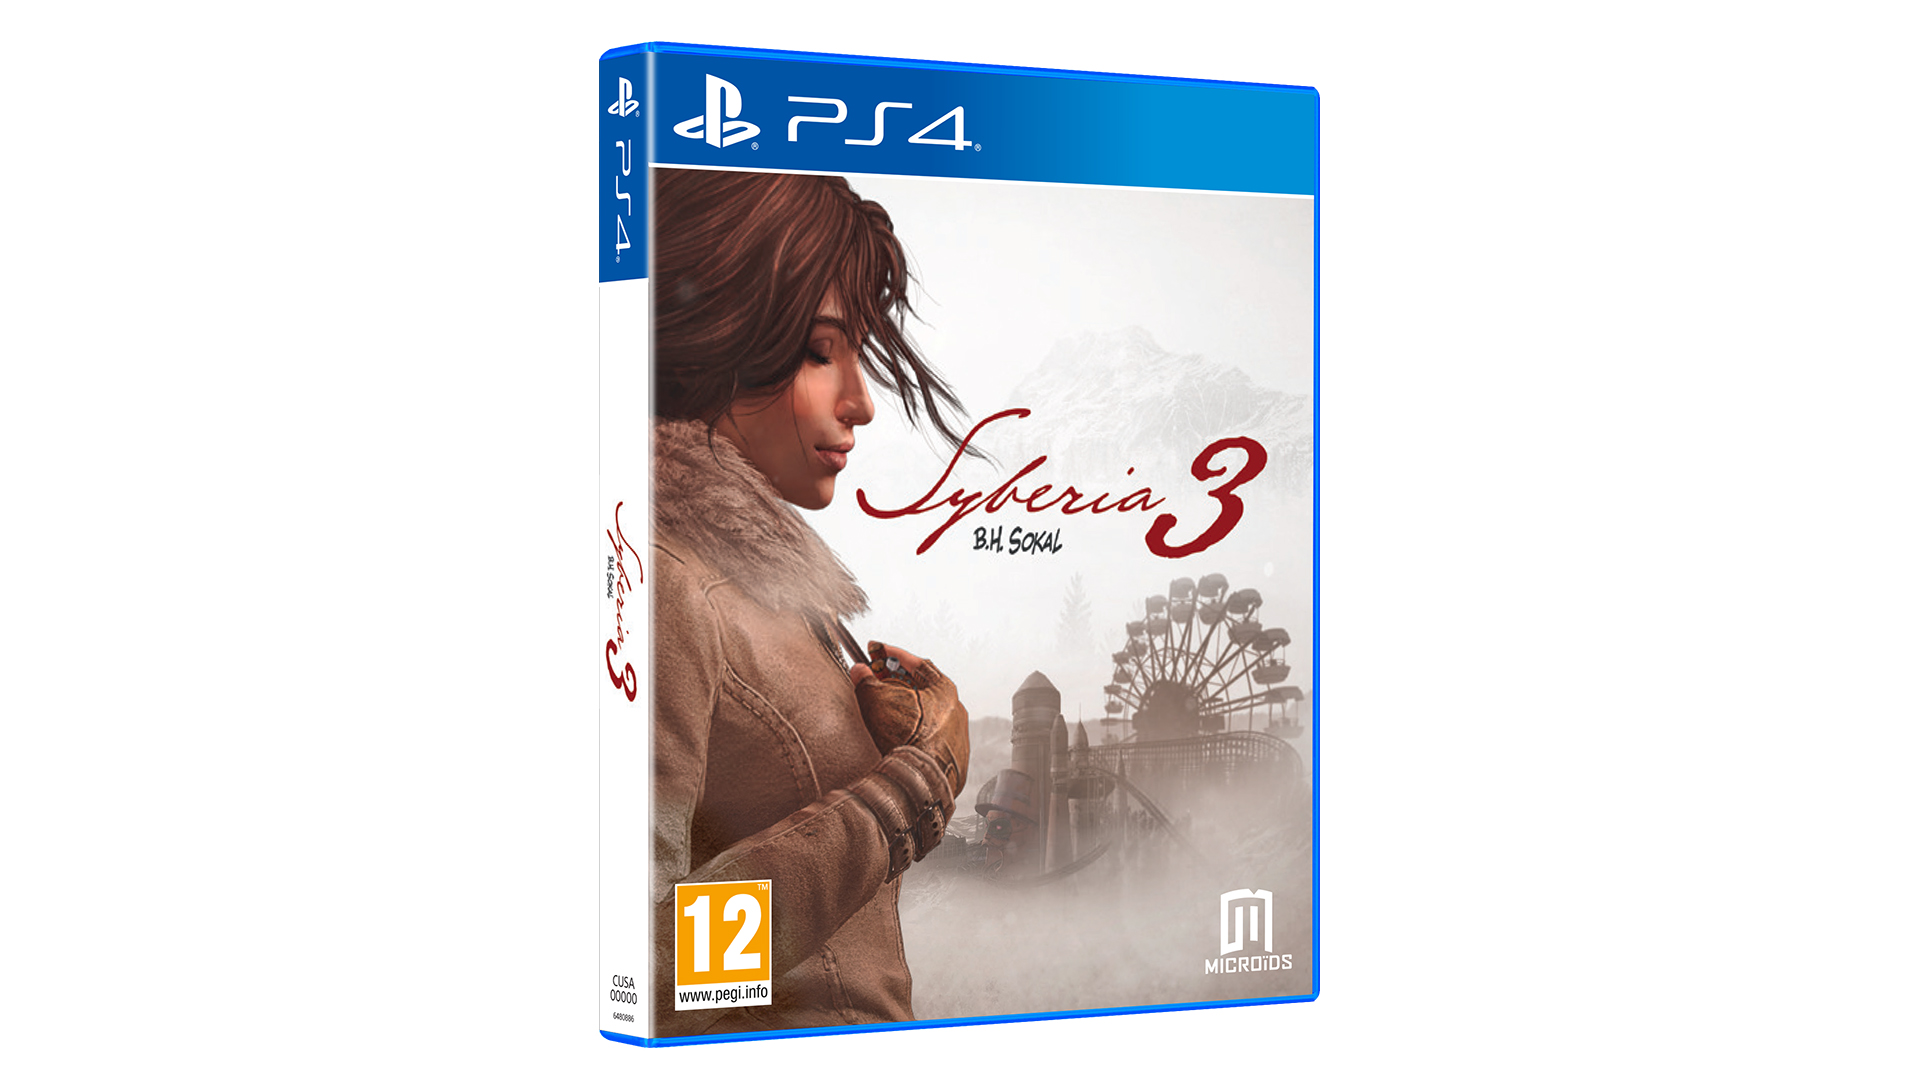 Syberia 3 (Microids Replay)